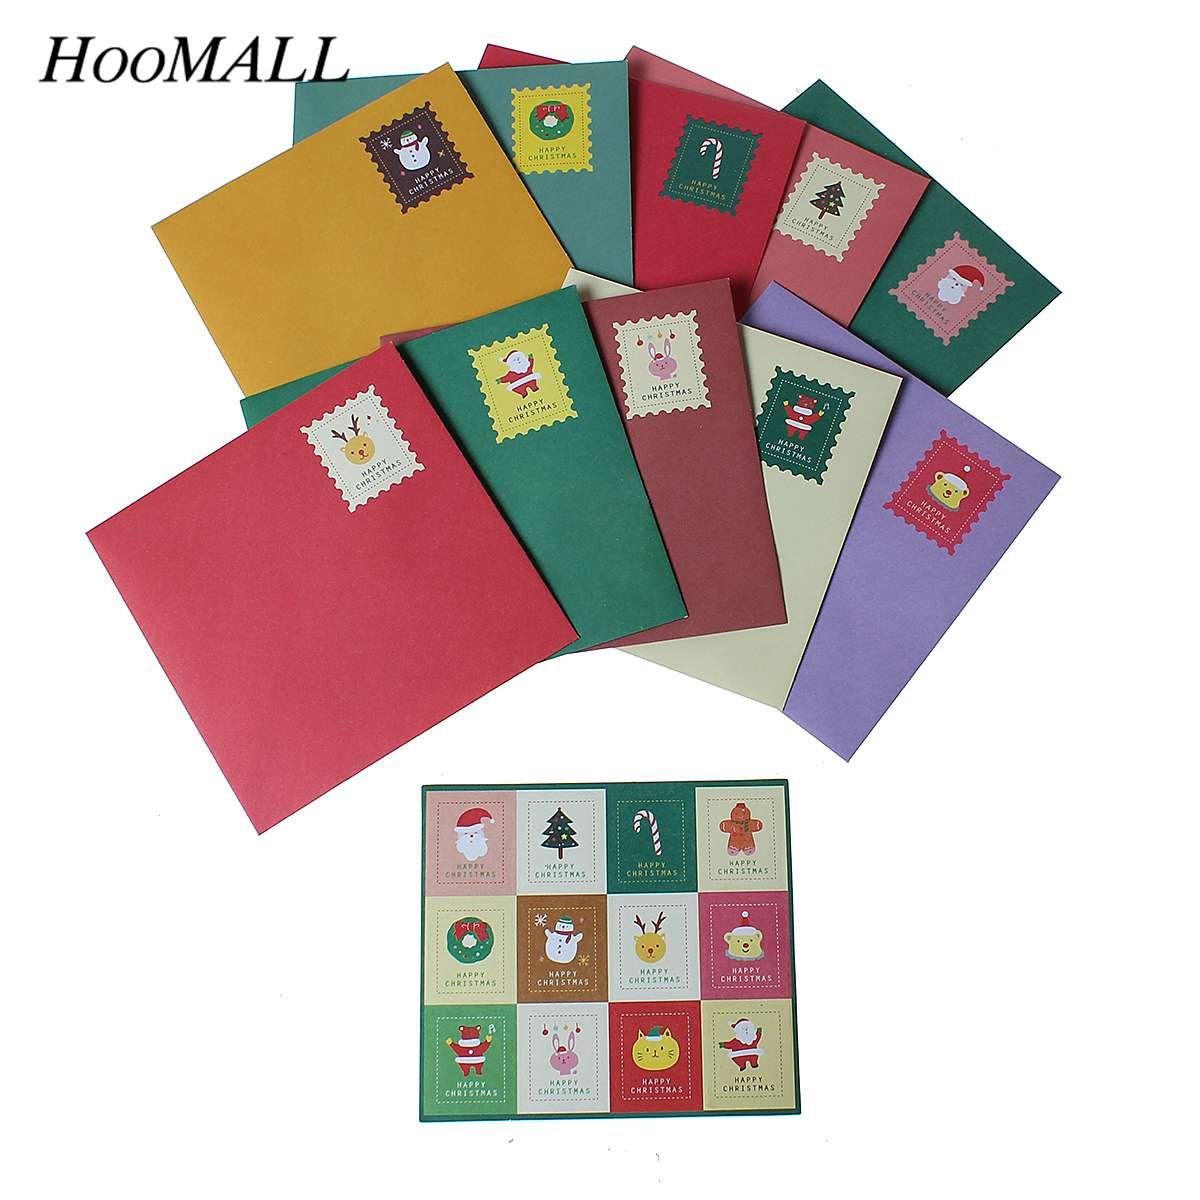 Hoomall 10 Cards +10 Envelopes+12Sealed Paste Per Box Random Folding Christmas Cards Envelopes Invatation Gifts For New Year 2015 bowman baseball cards hobby box 24 packs box 10 cards pack 1 rookie autograph per box april 29th release